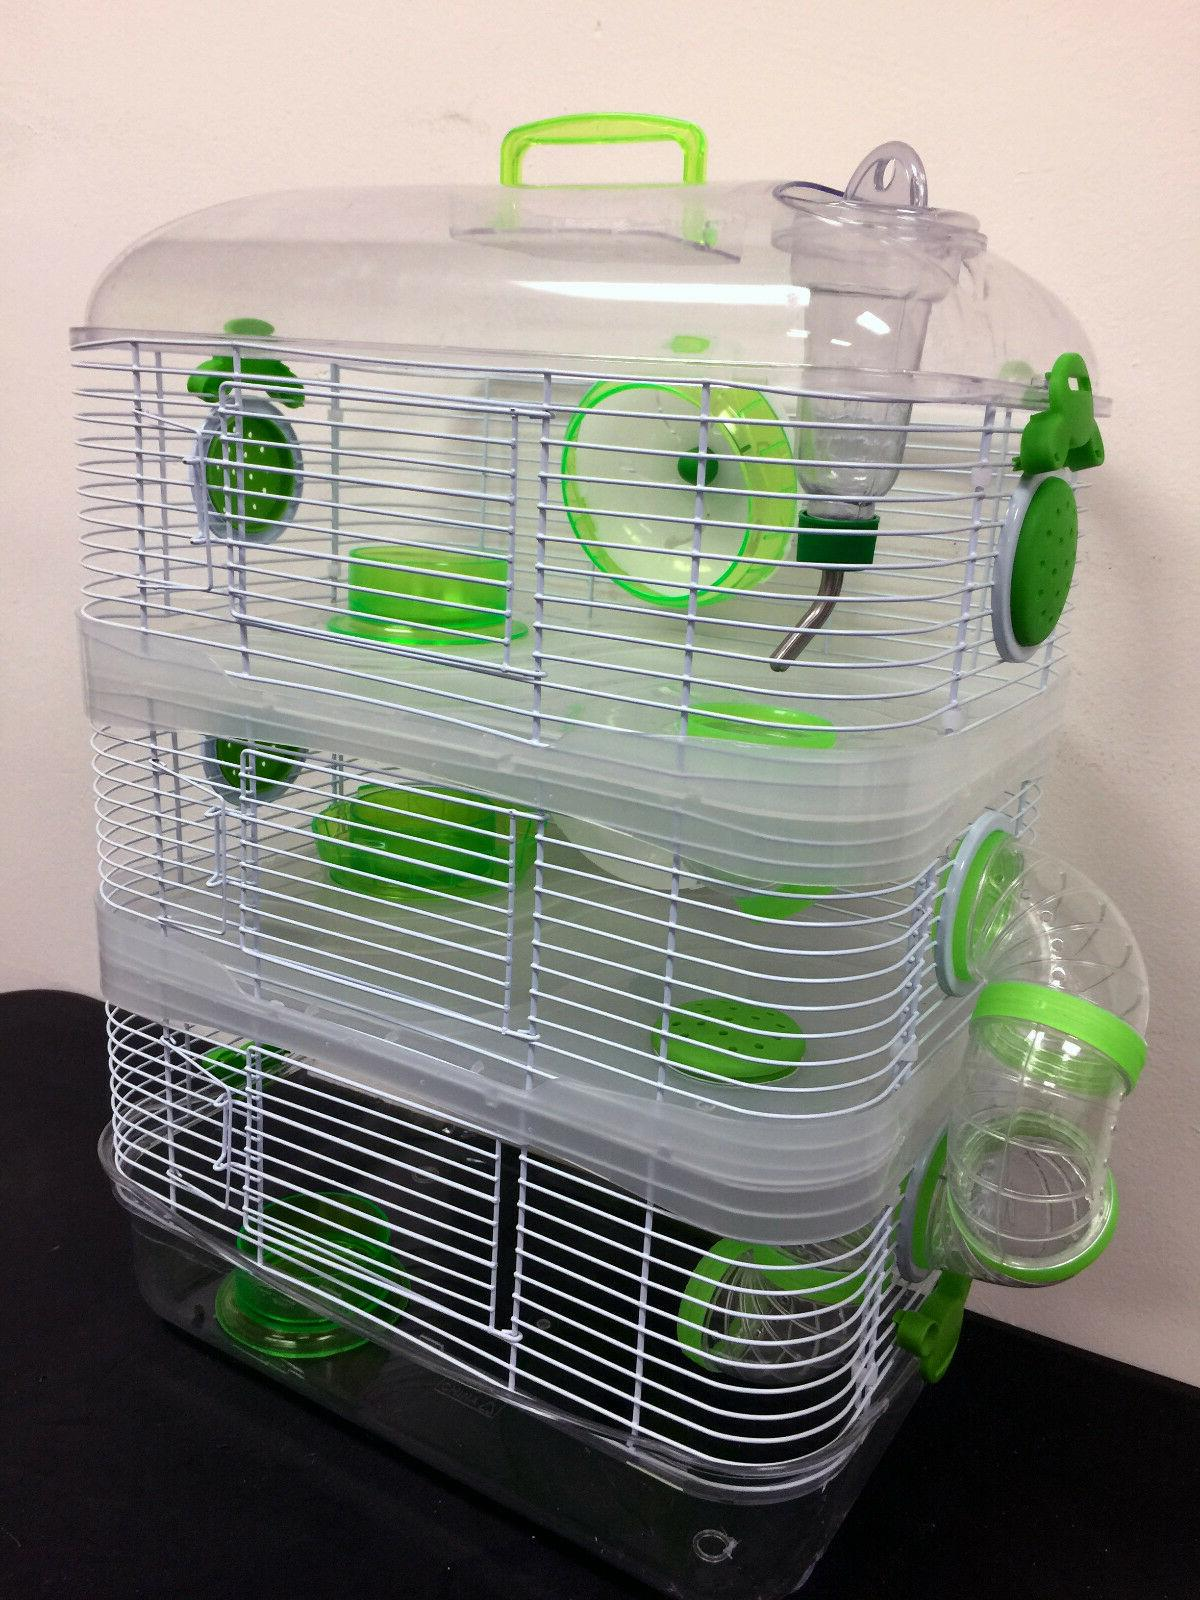 3 Level Clear Dwarf Hamster Rodent Gerbil Mice Critter Trail